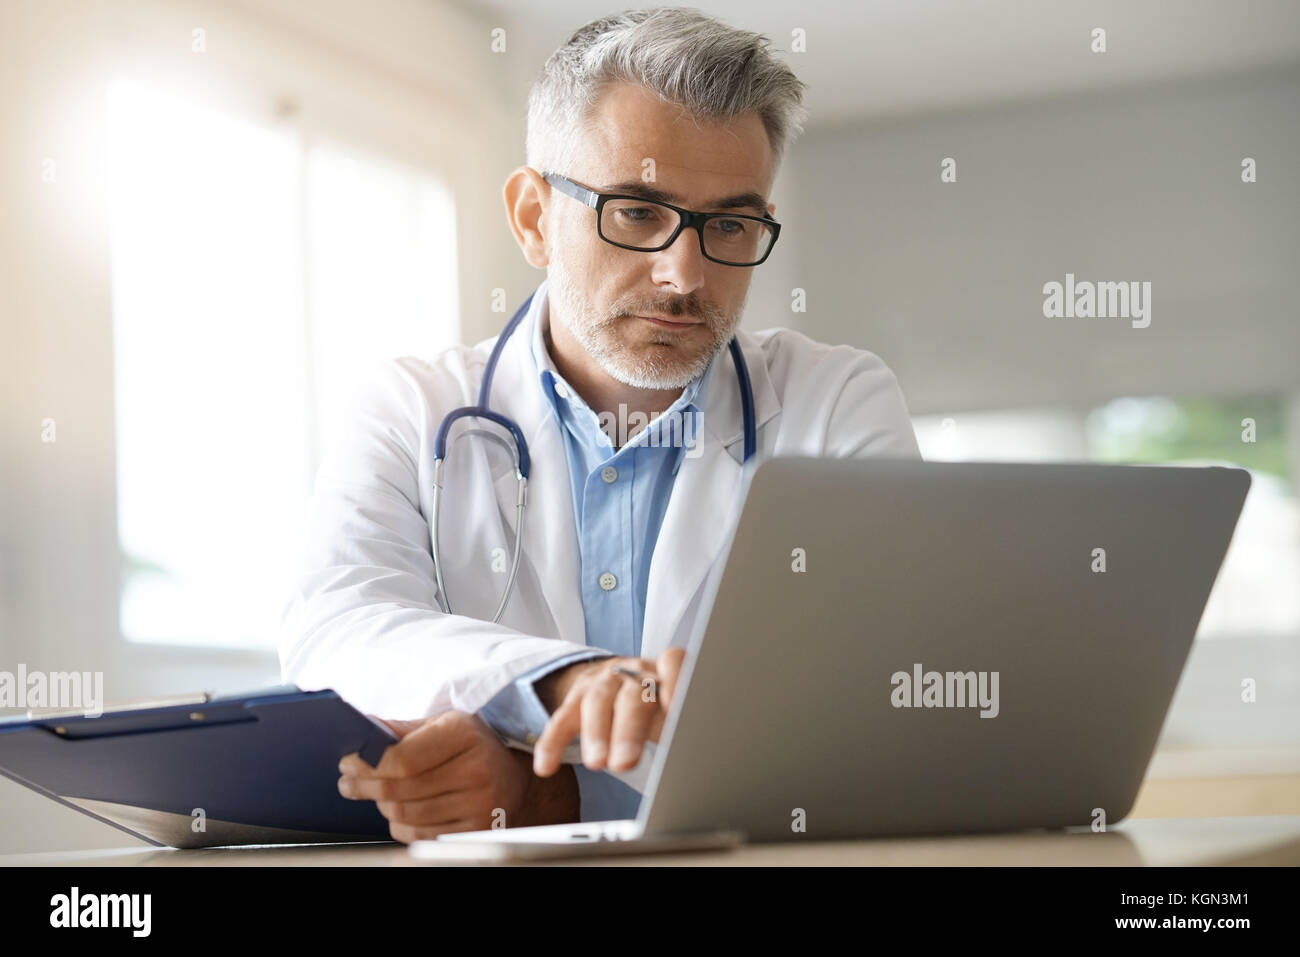 Doctor in office working on patient file - Stock Image